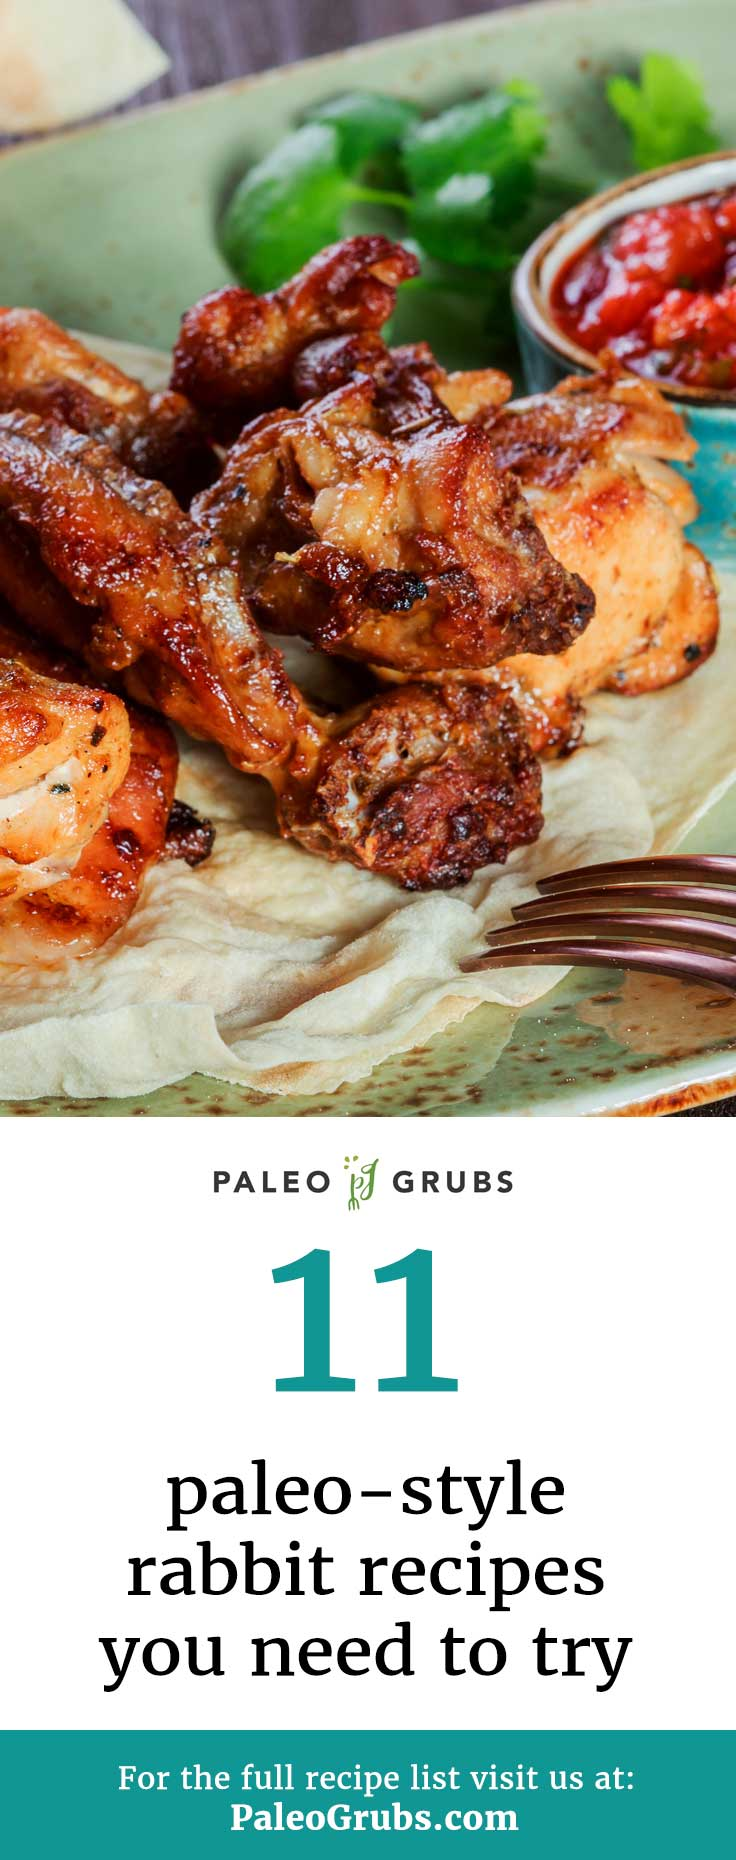 Rabbit is definitely a Paleo food, but without these rabbit recipes I wouldn't have known how to prepare it. Don't be afraid to try new foods with Paleo!